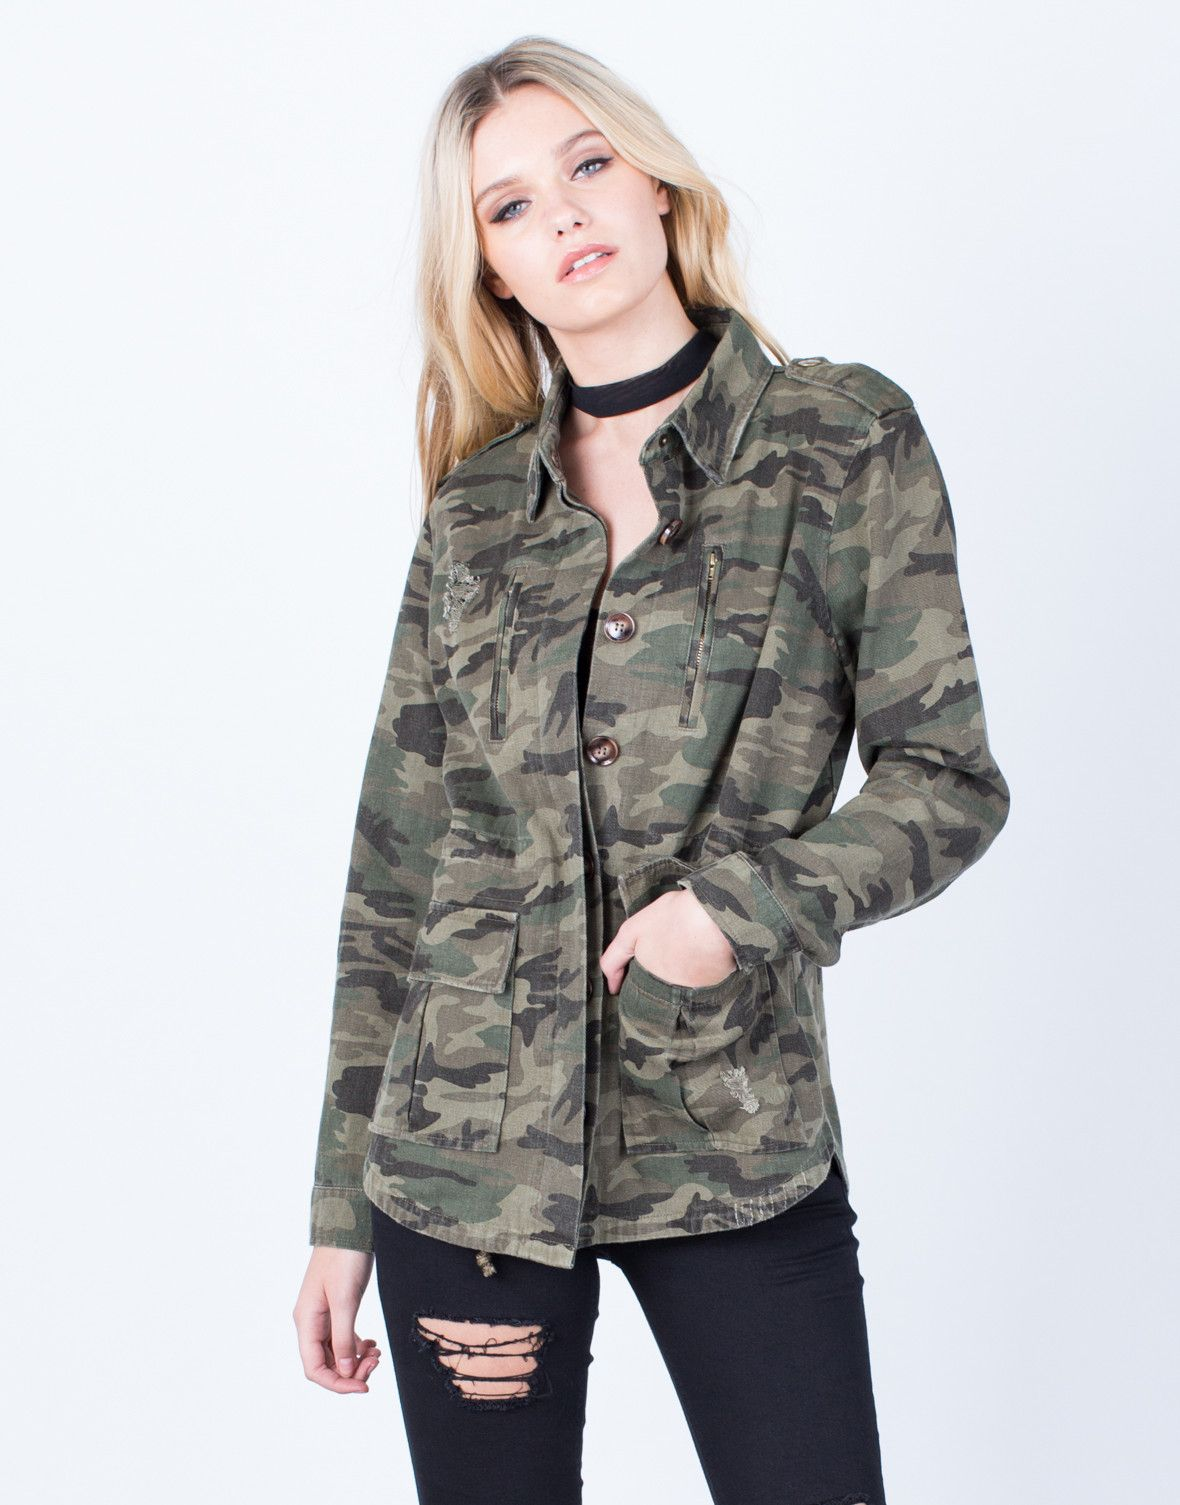 How to camouflage a wear print jacket